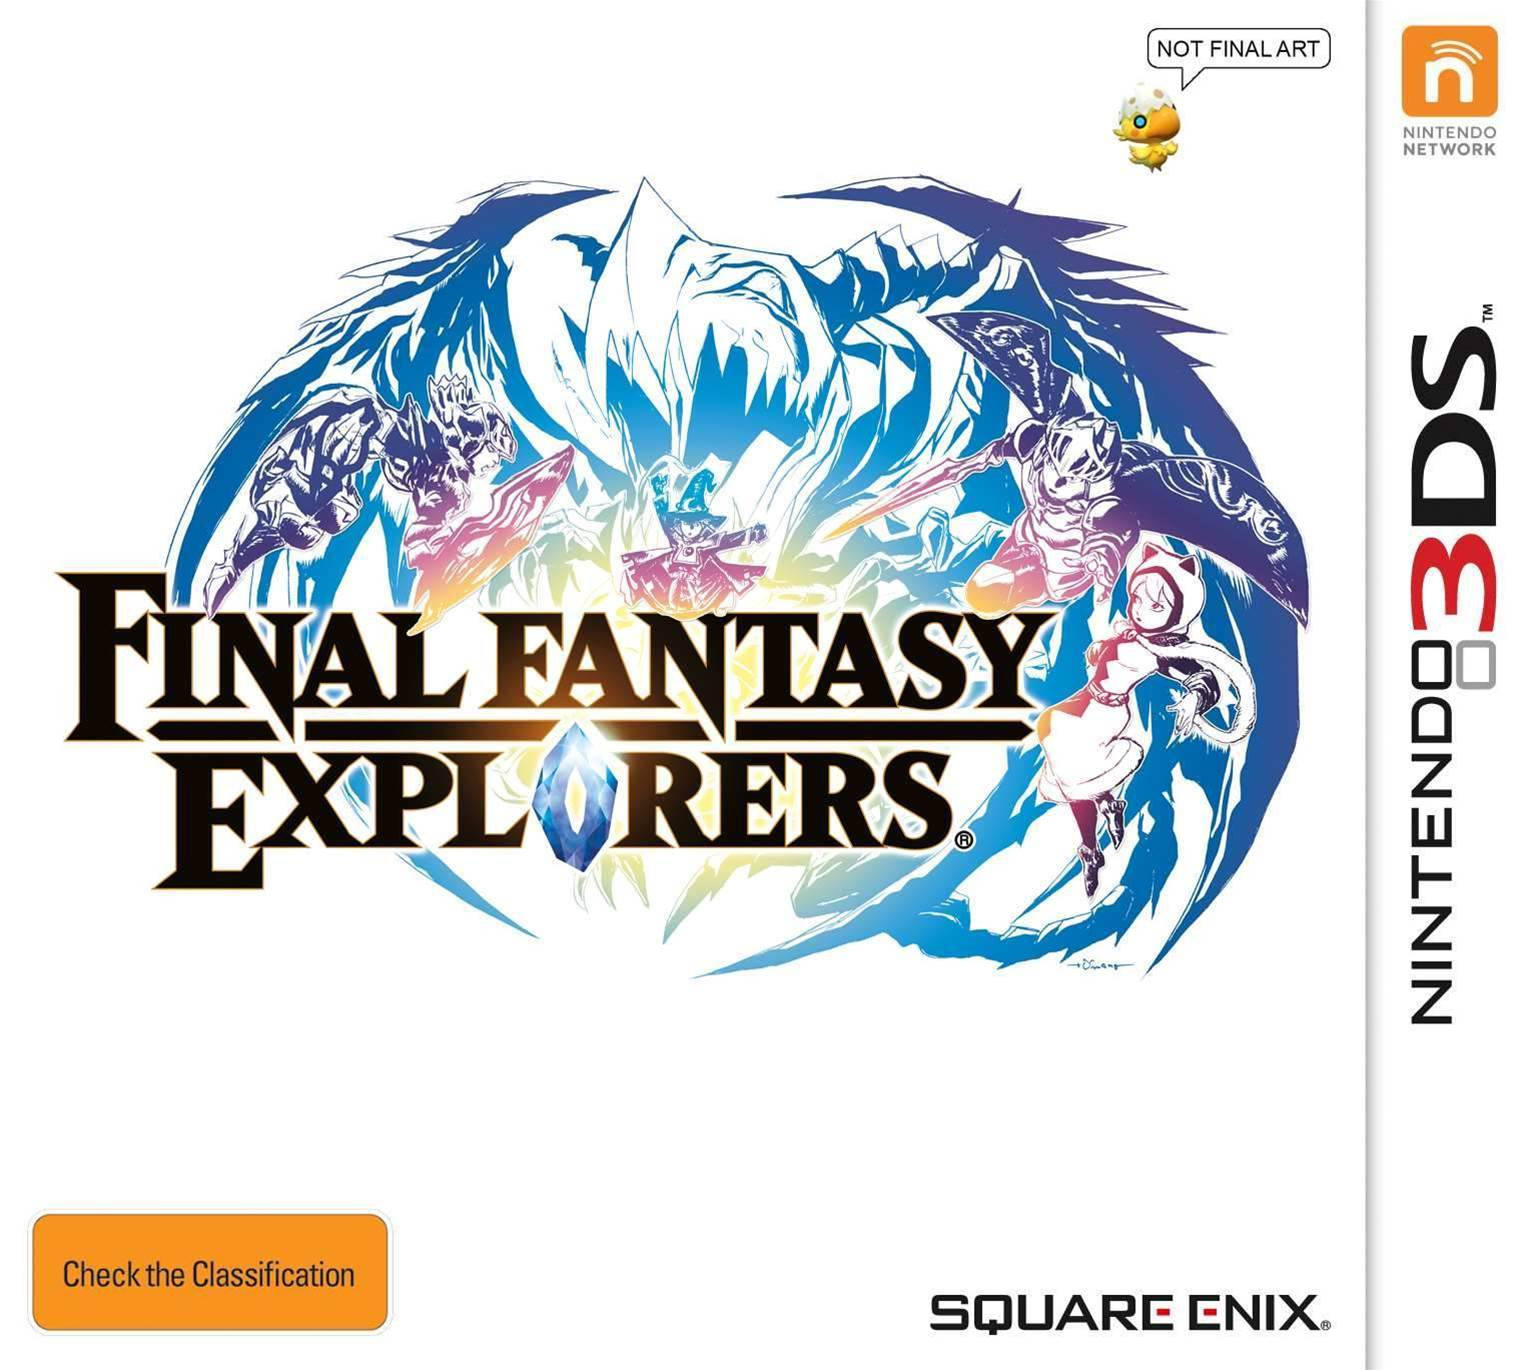 Final Fantasy Explorers announced for the 3DS